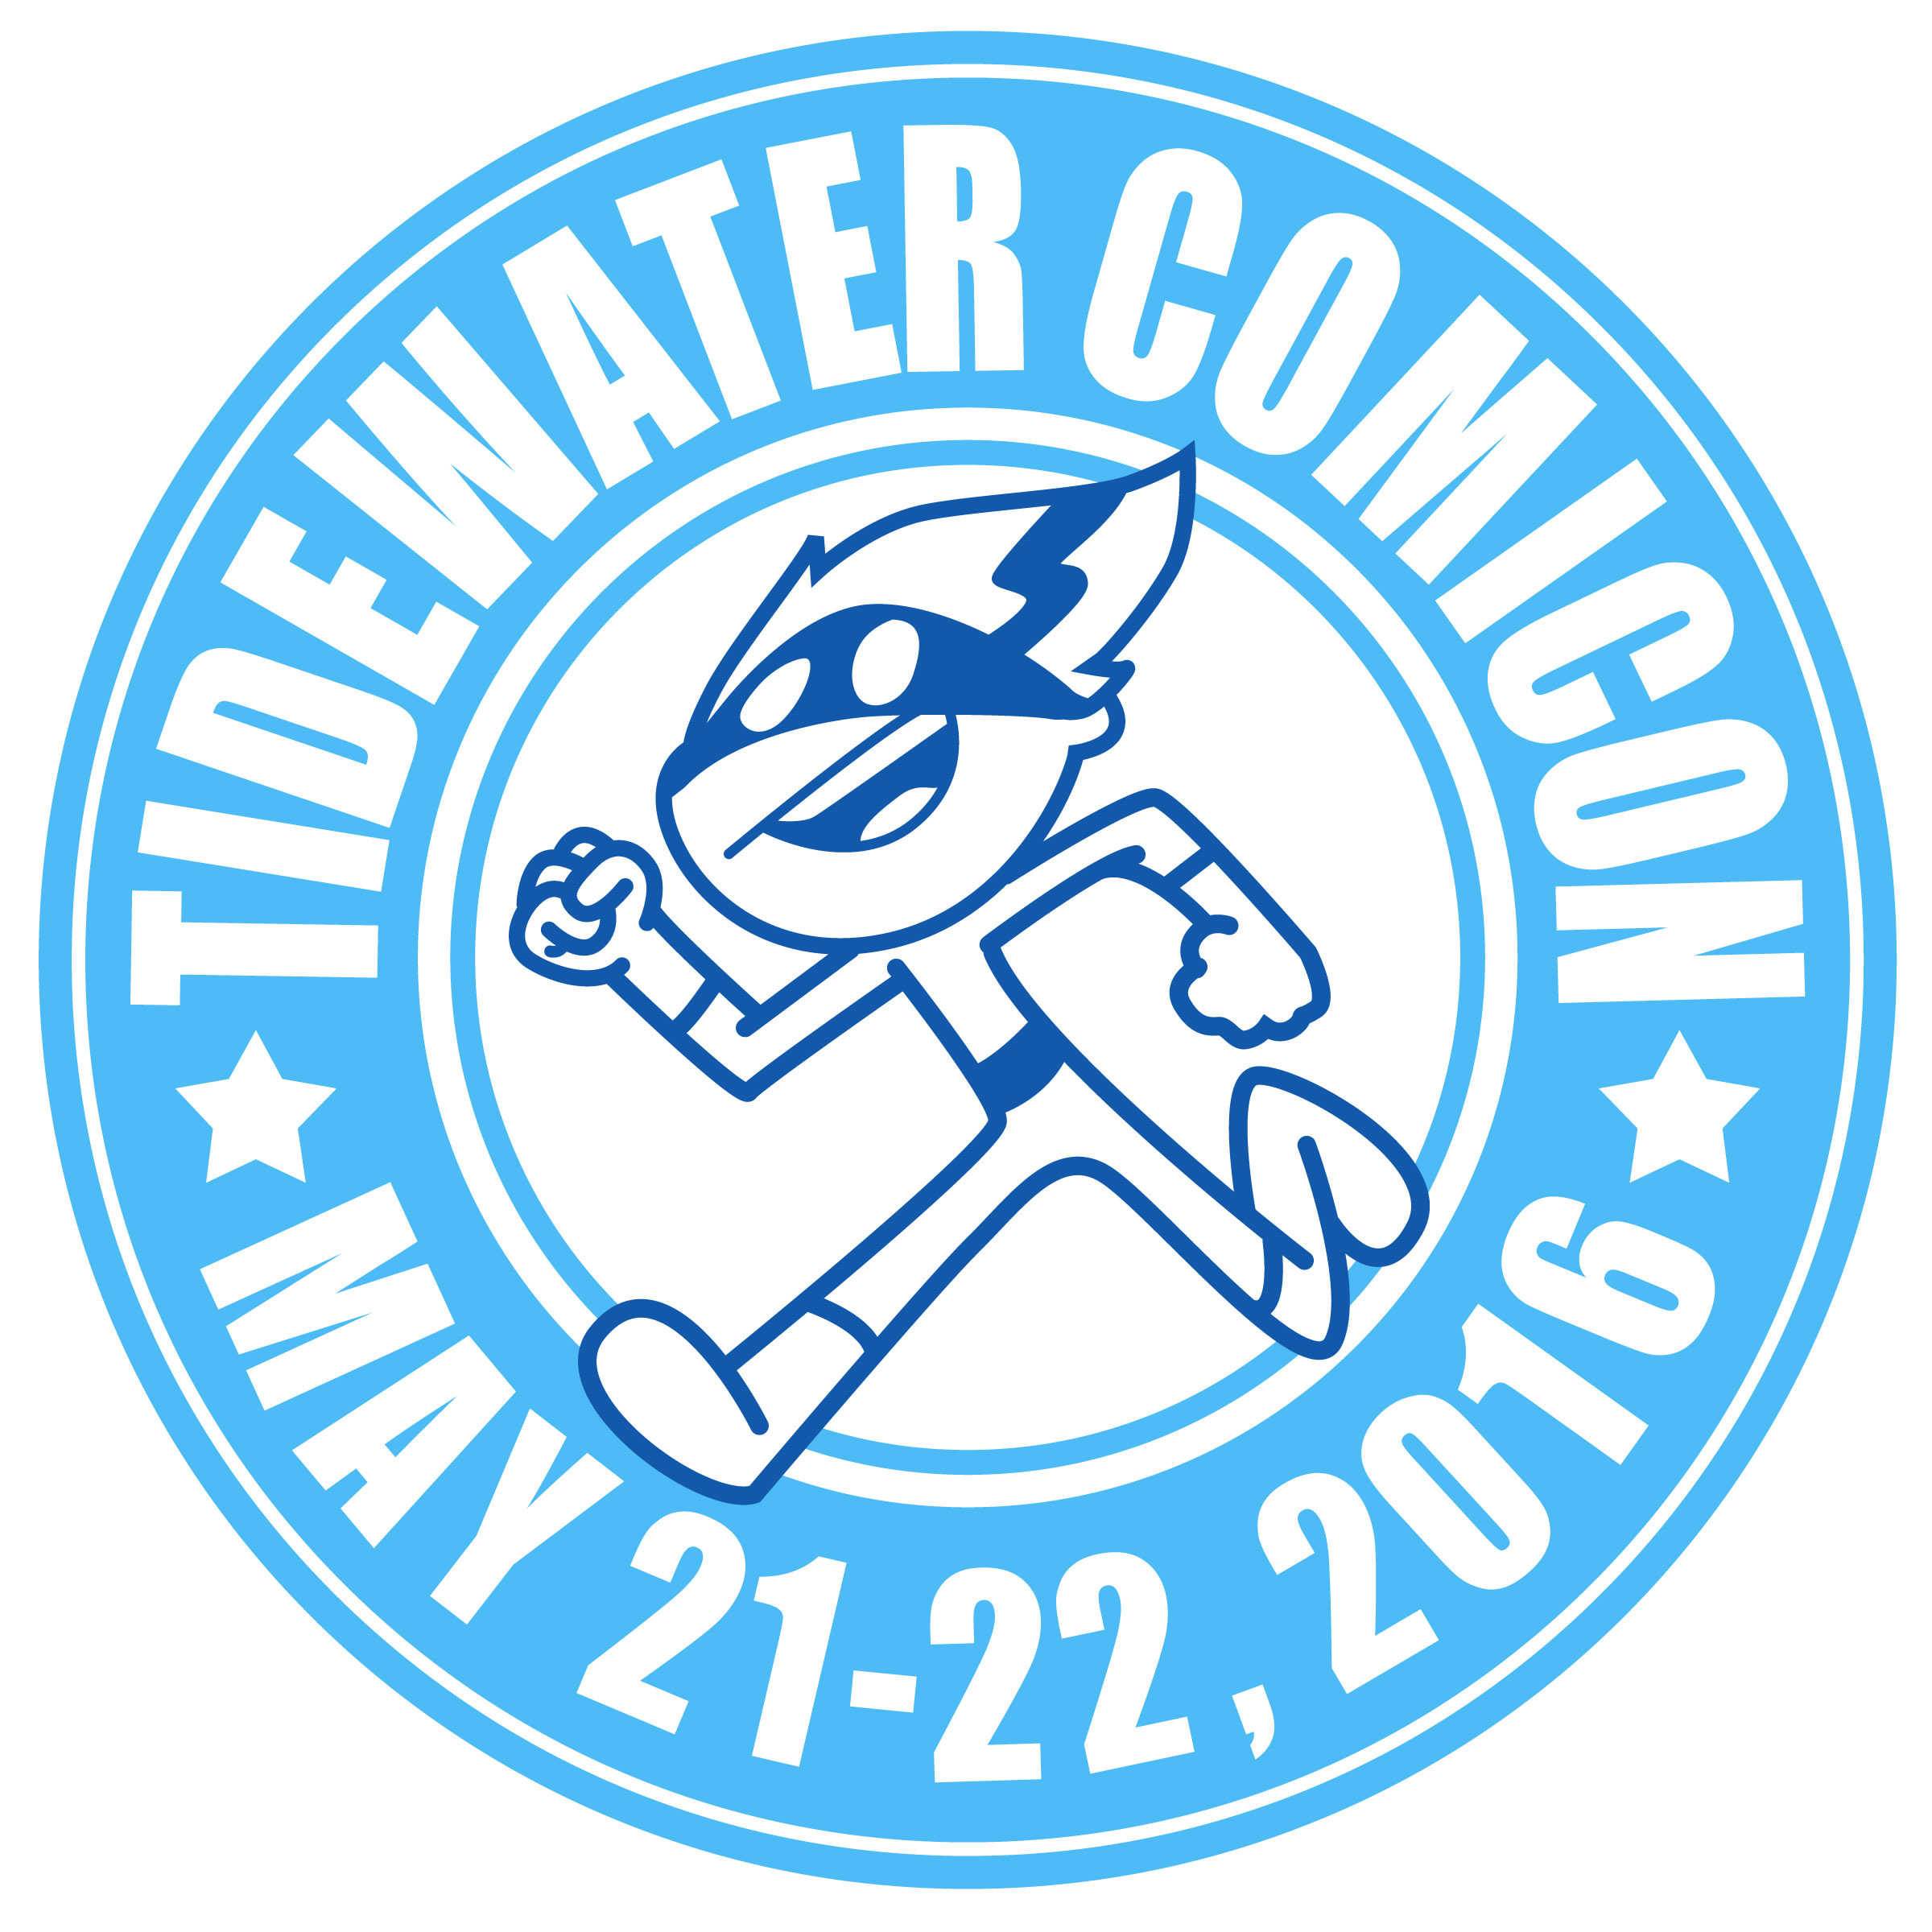 tidewater dating 2018 grand prix rules a runner must be a tidewater strider member in good standing and complete a minimum of 6 races  no back dating of points from prior events .